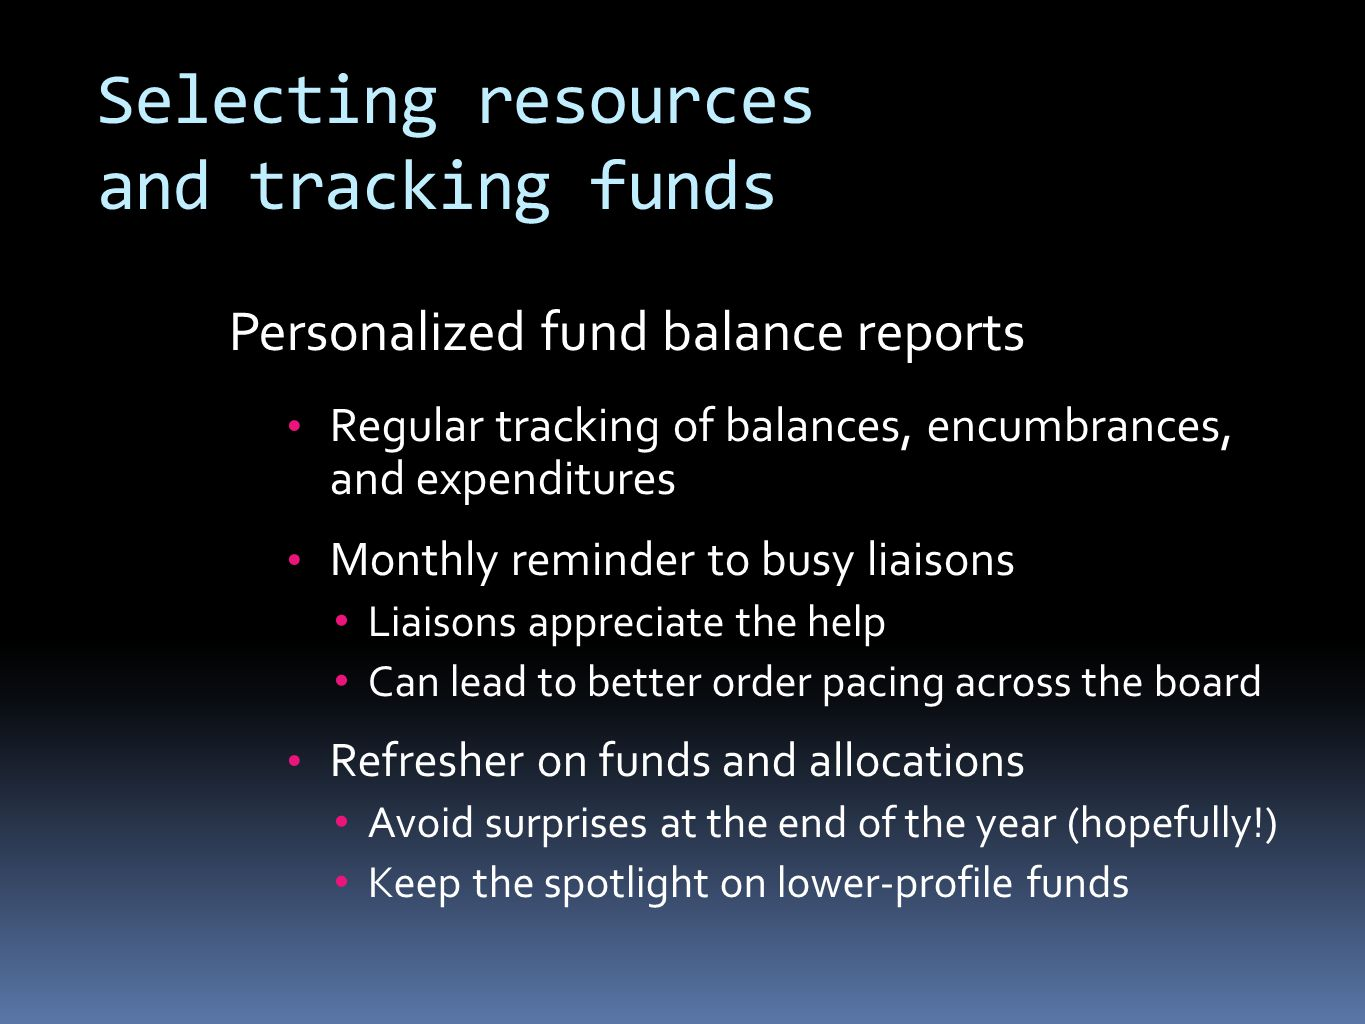 Selecting resources and tracking funds Personalized fund balance reports Regular tracking of balances, encumbrances, and expenditures Monthly reminder to busy liaisons Liaisons appreciate the help Can lead to better order pacing across the board Refresher on funds and allocations Avoid surprises at the end of the year (hopefully!) Keep the spotlight on lower-profile funds